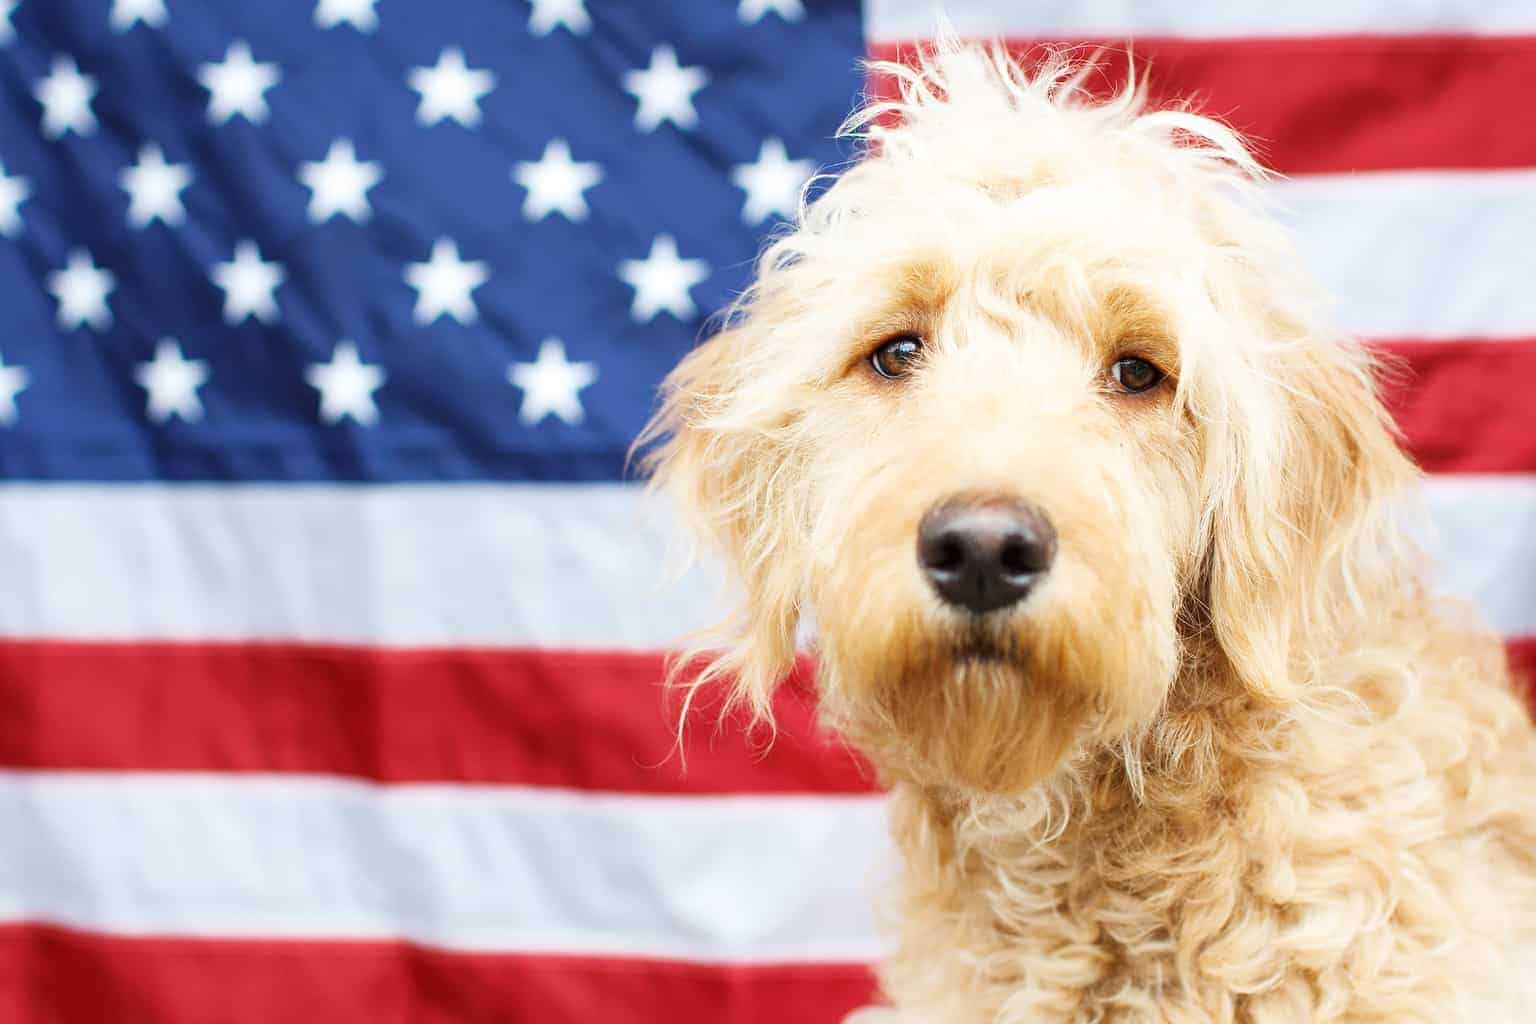 Electrolytes and Vitamins for dogs